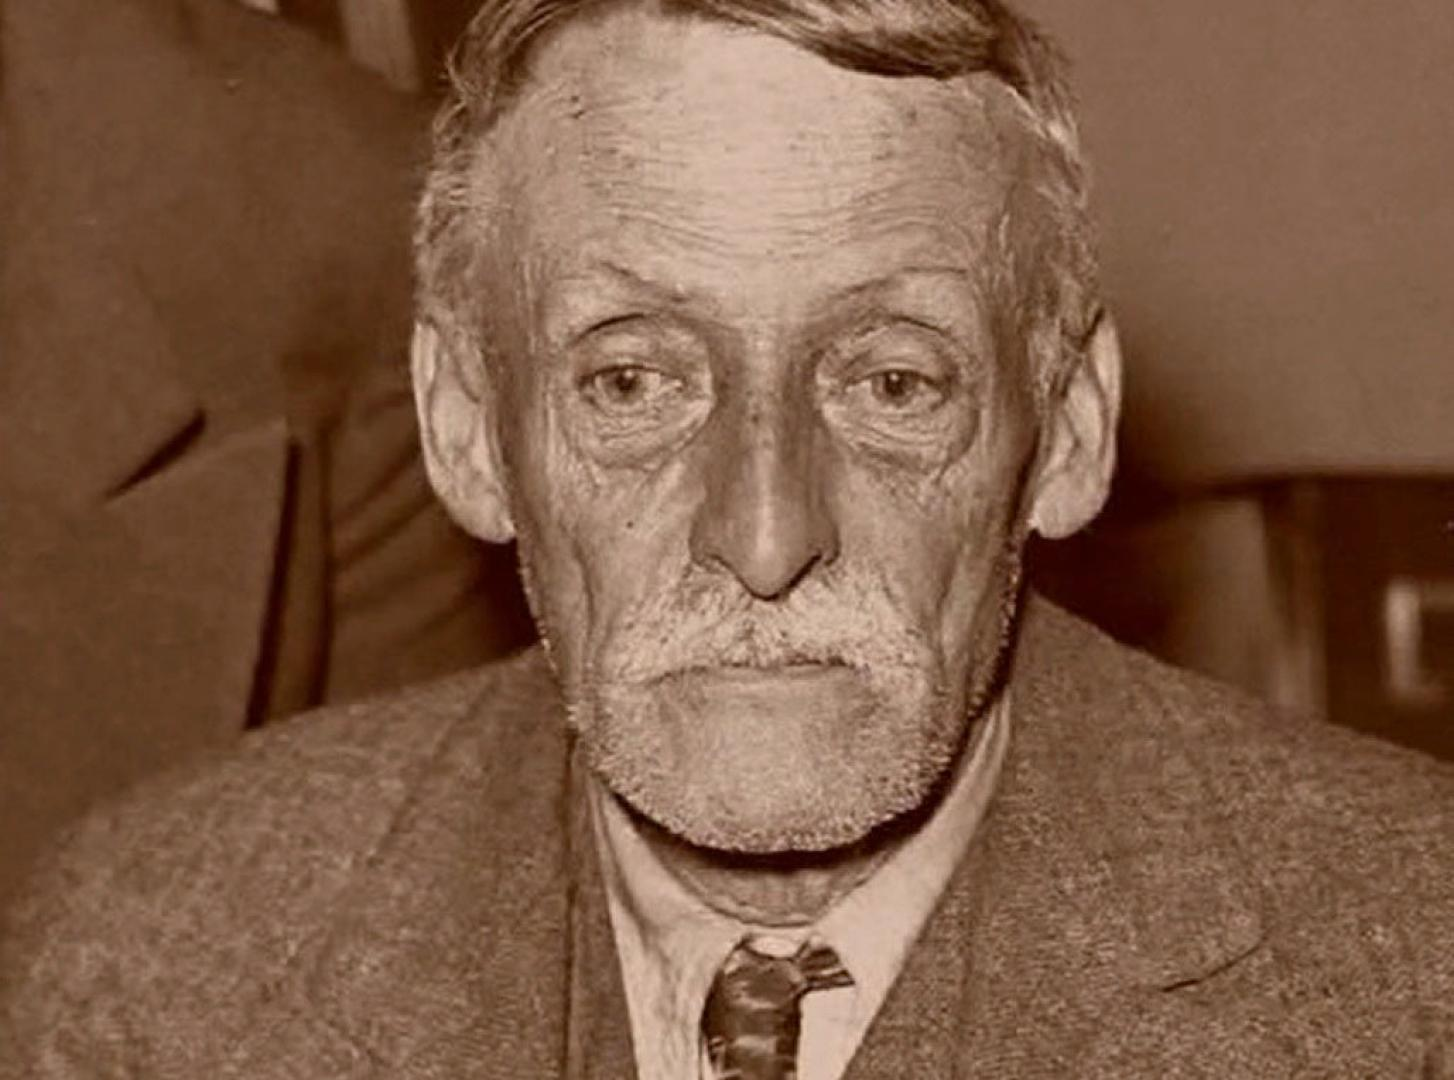 Albert Fish 1. kép